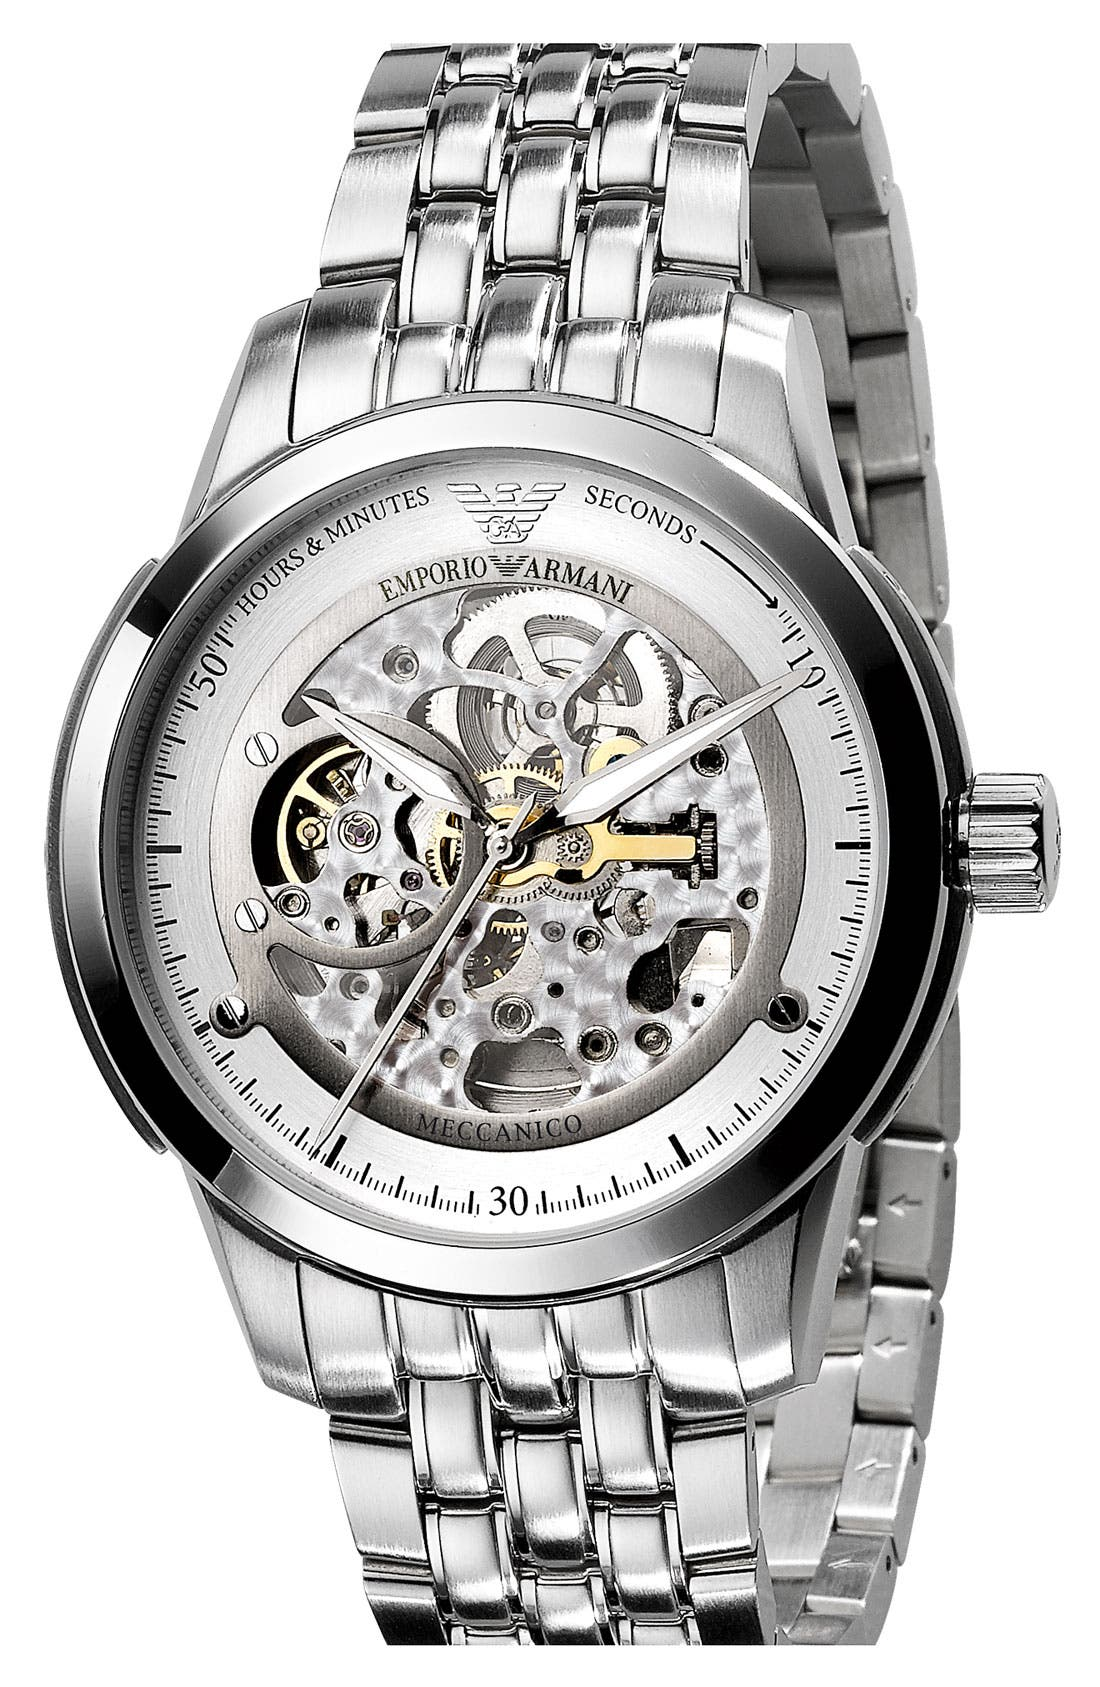 Alternate Image 1 Selected - Emporio Armani 'Meccanico' Automatic Round Watch